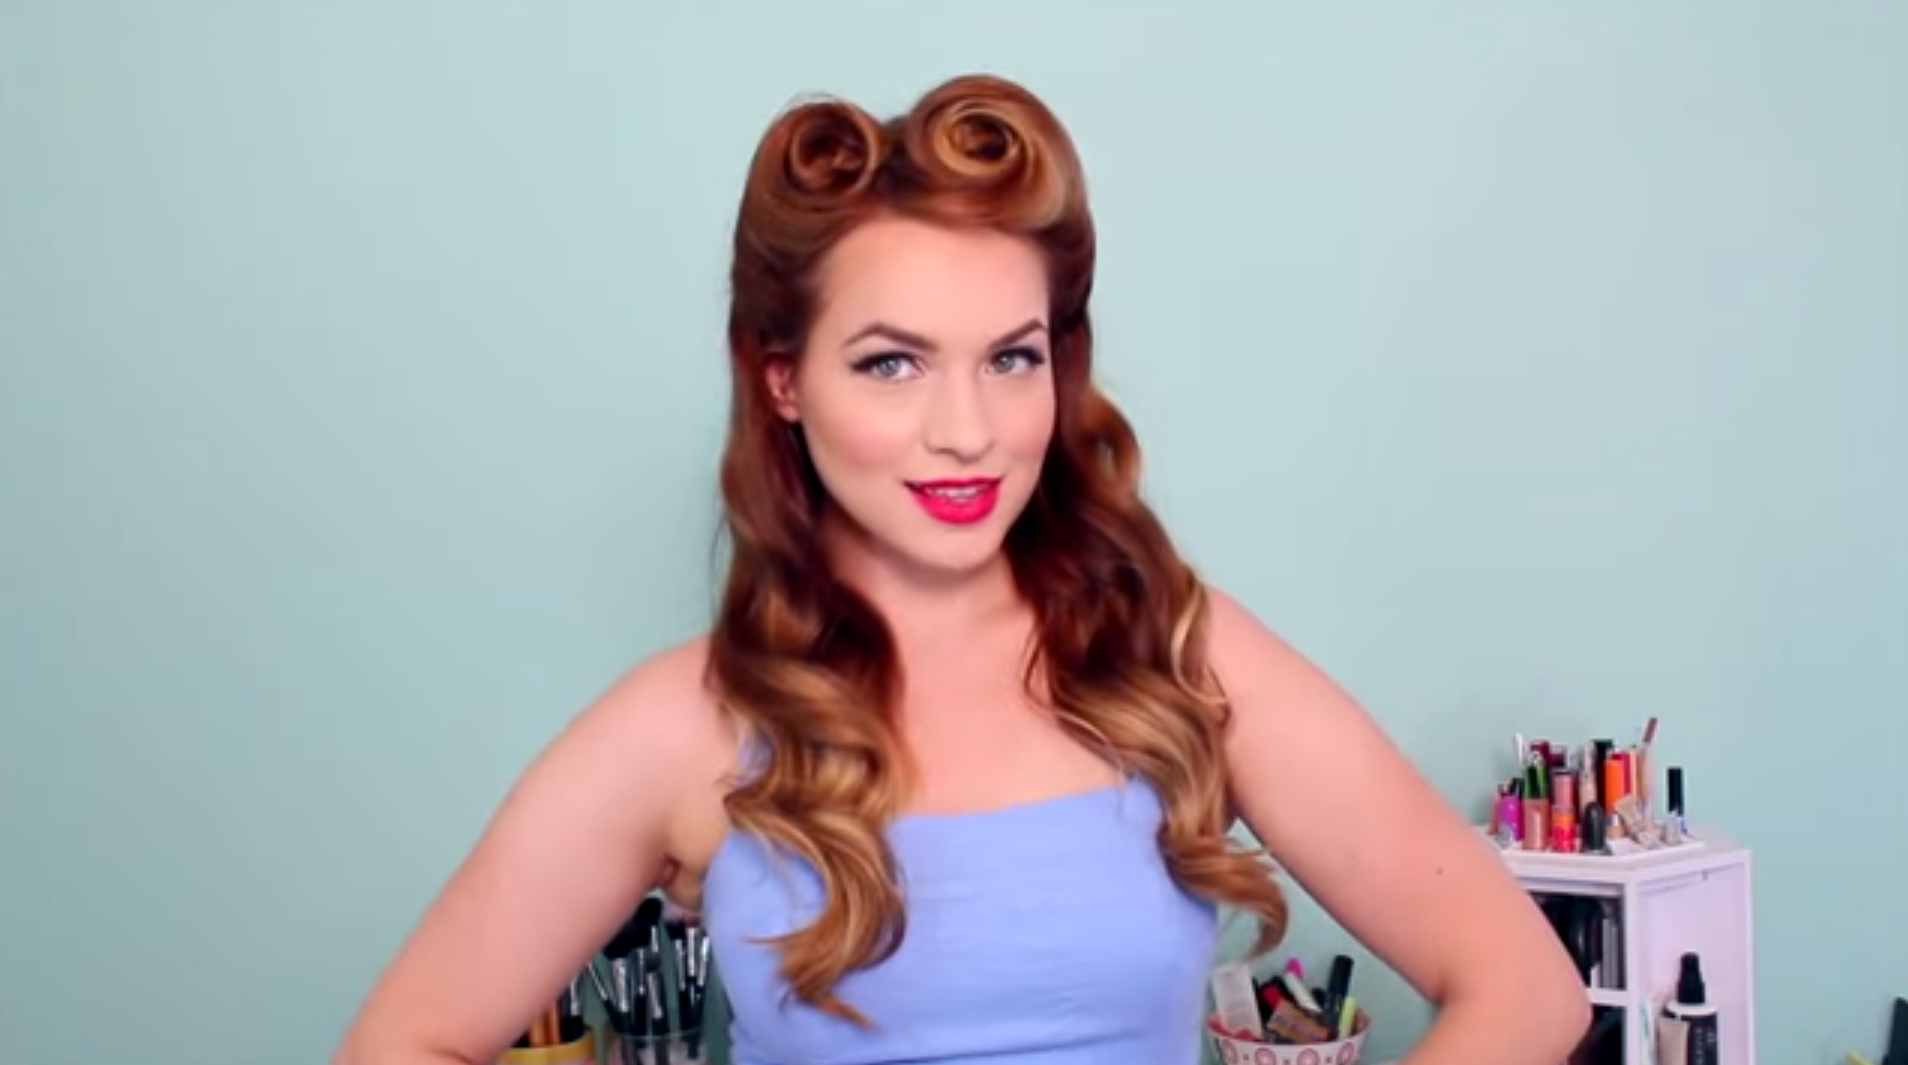 Pin Up Hairstyles Learn How To Style The Look At Home Stylecaster